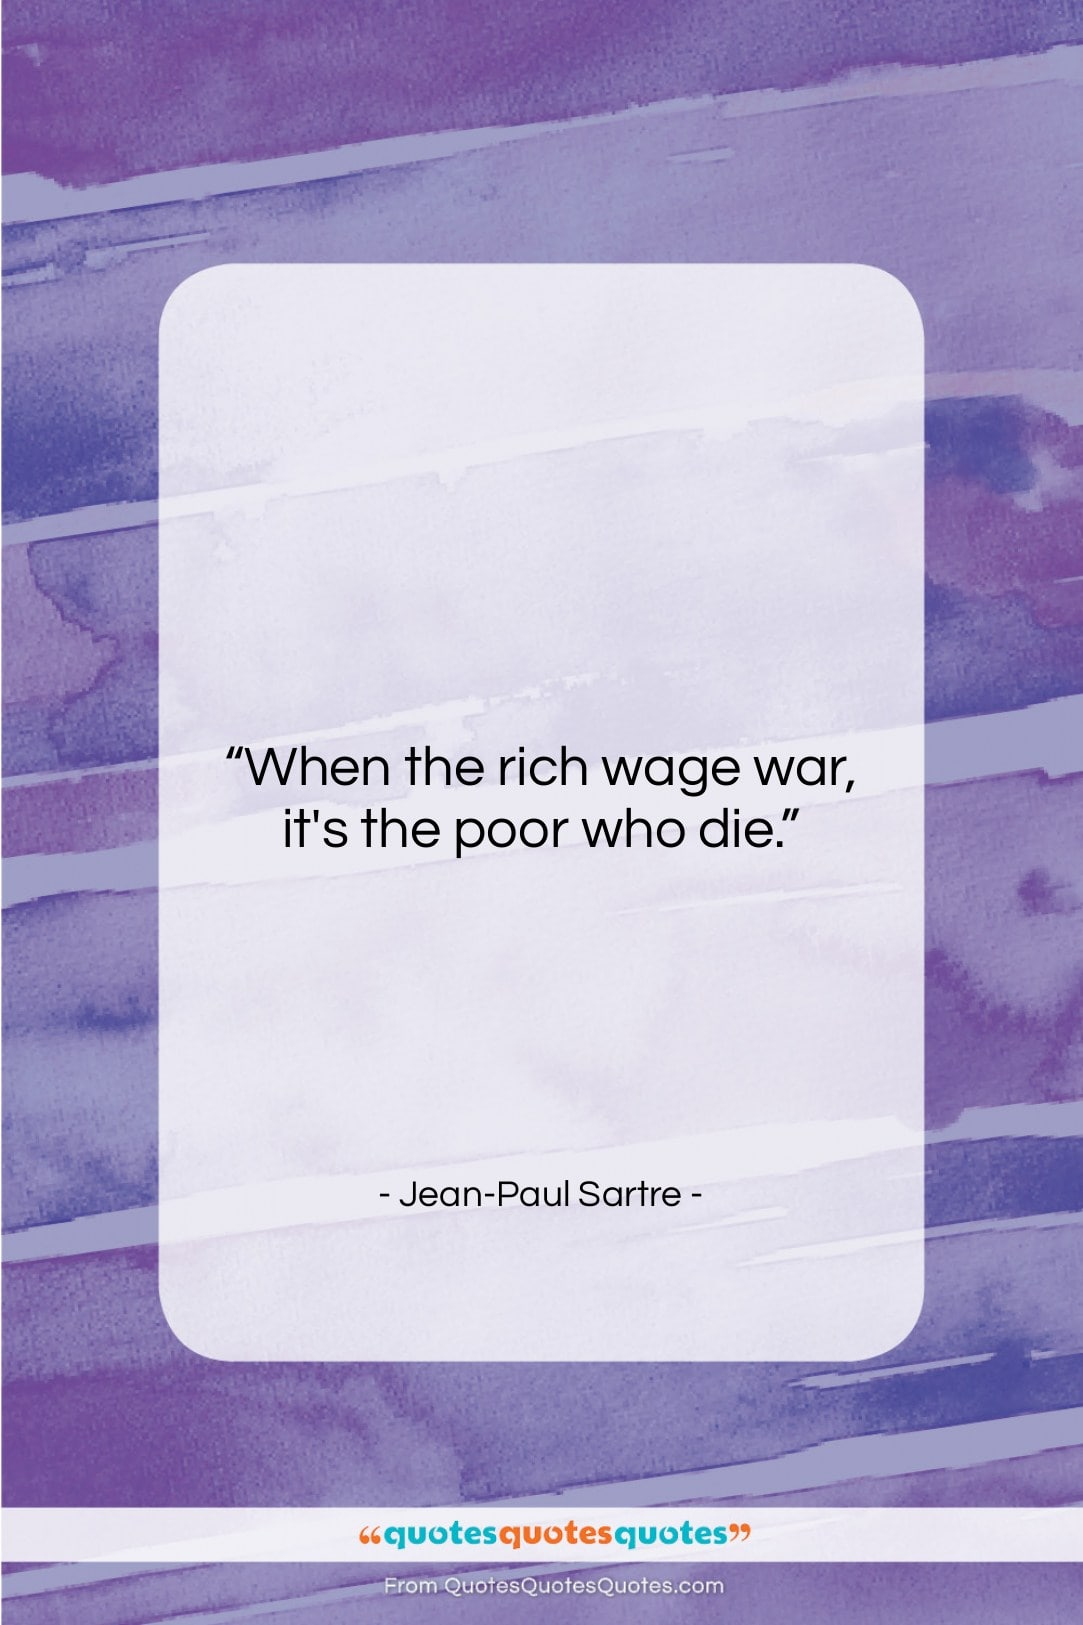 """Jean-Paul Sartre quote: """"When the rich wage war, it's the…""""- at QuotesQuotesQuotes.com"""